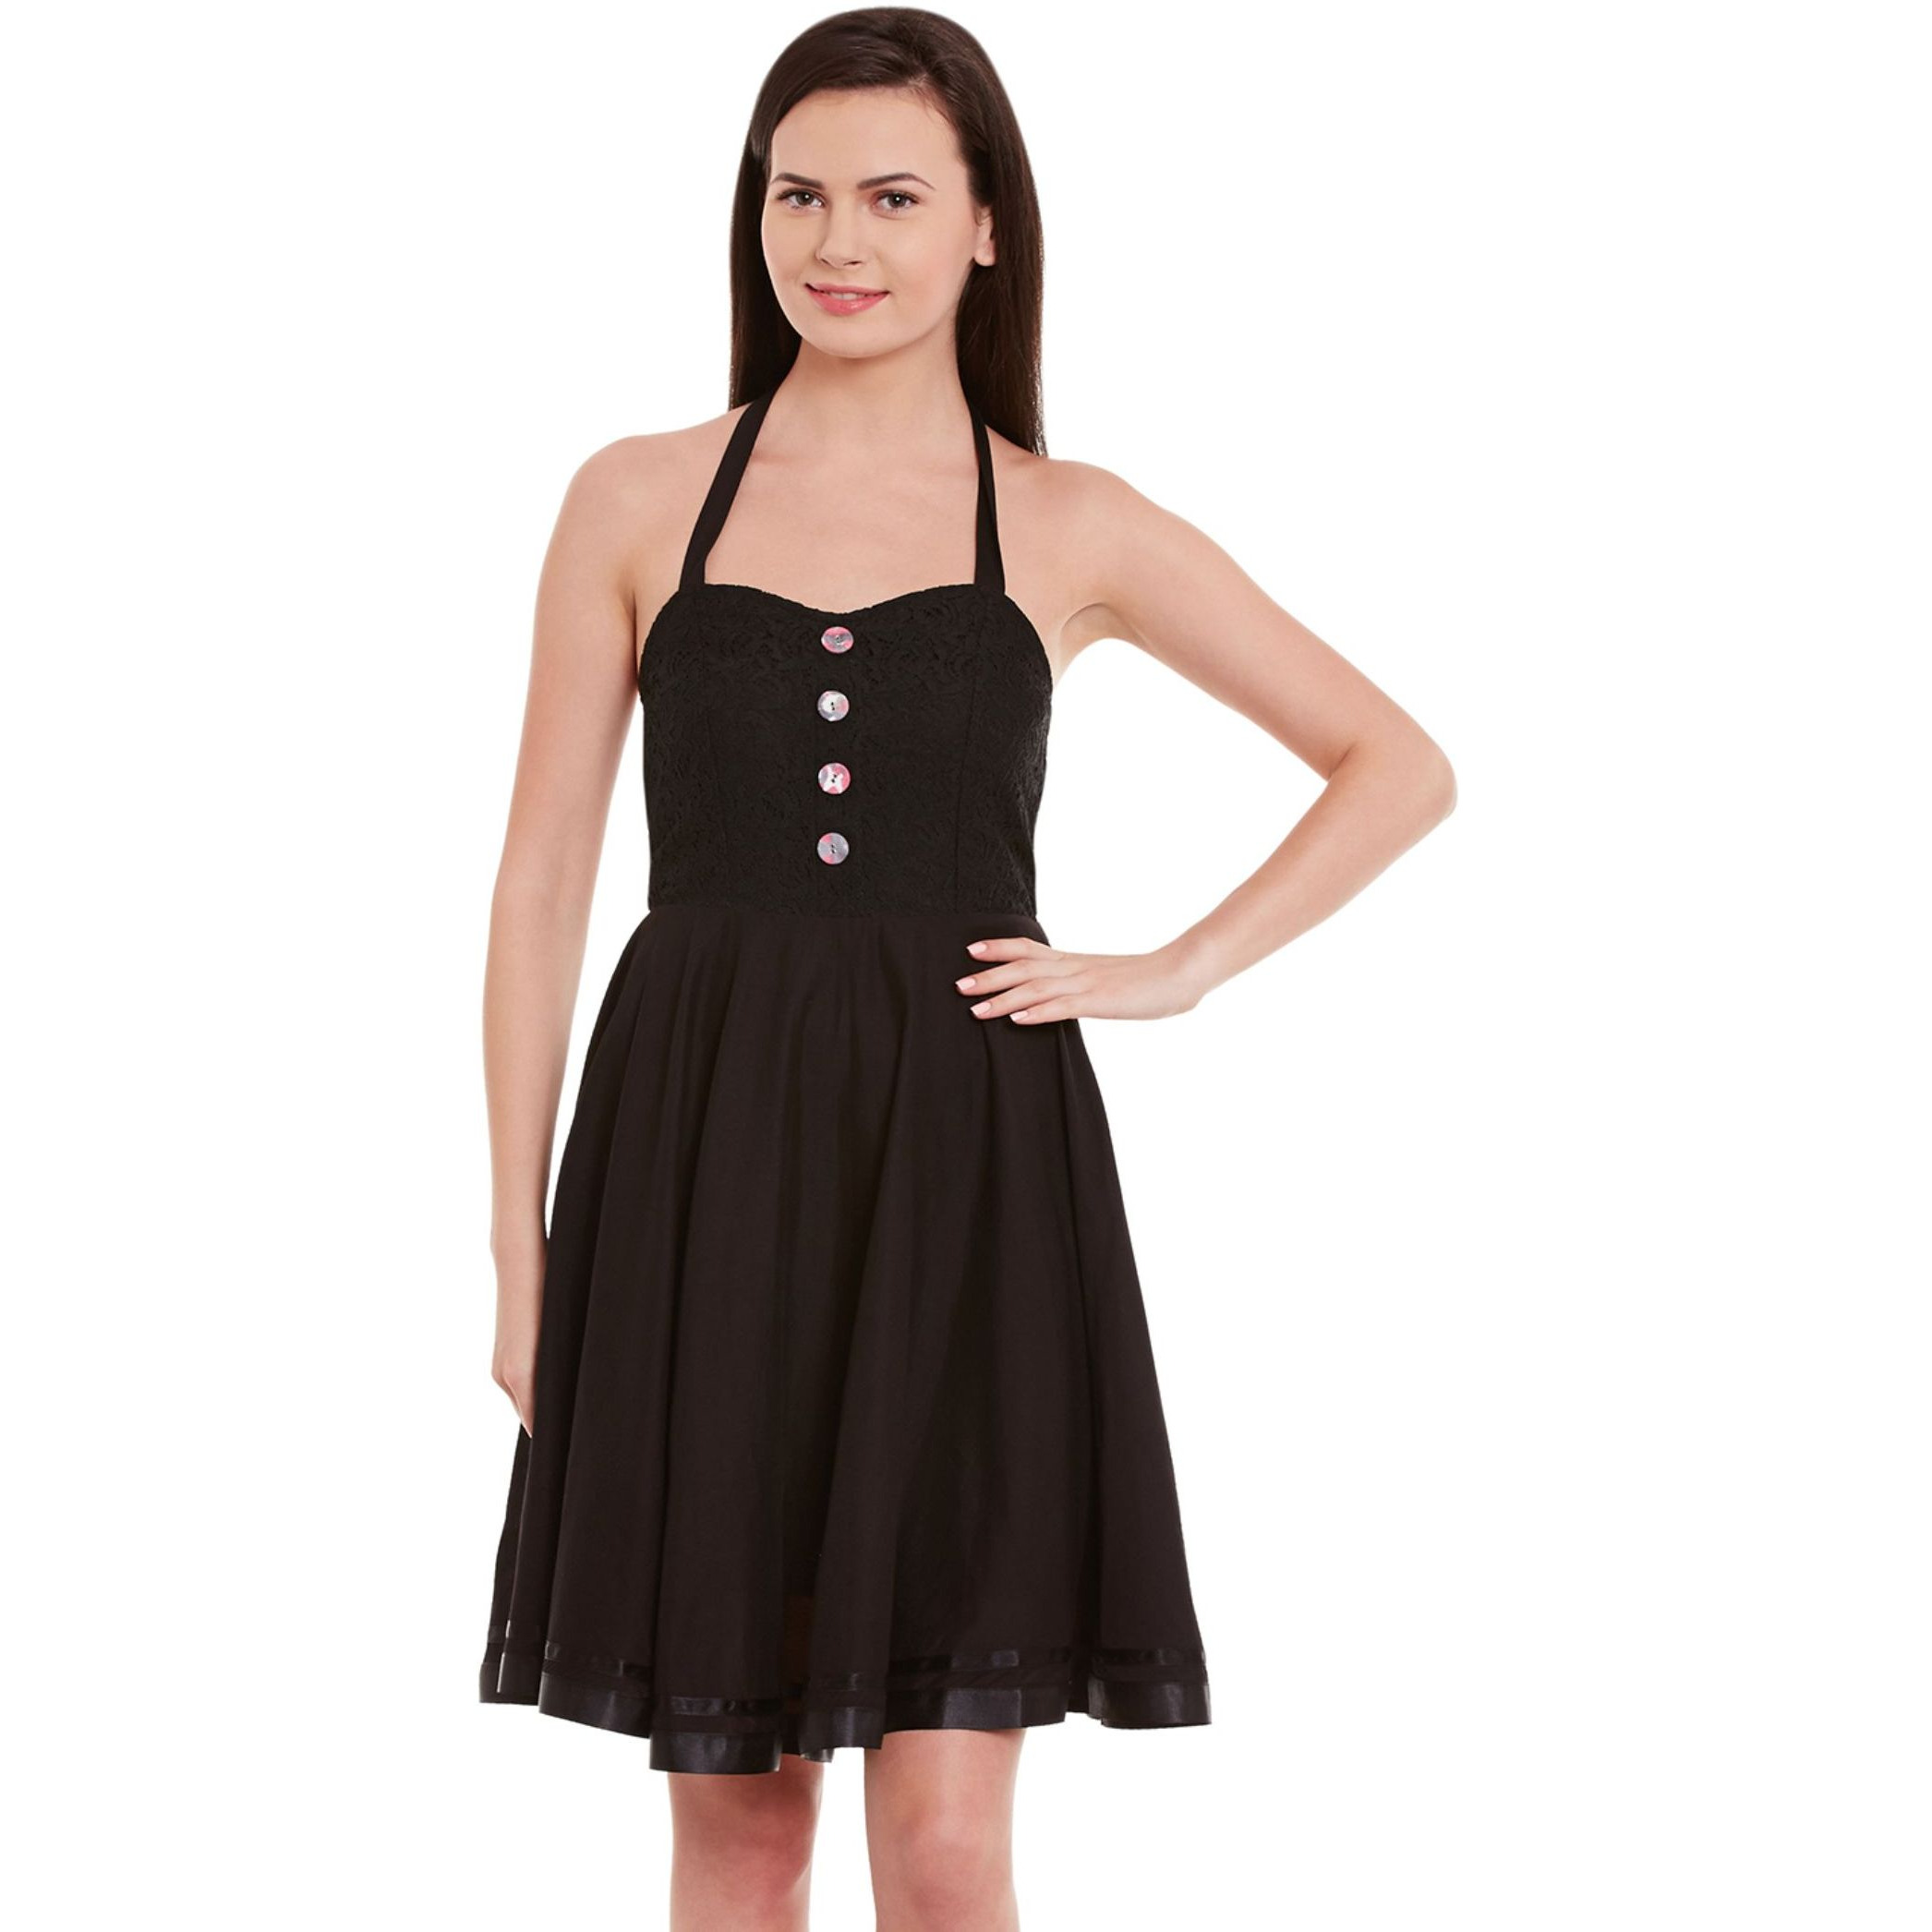 Halter Neck Skater Dress In Black Color